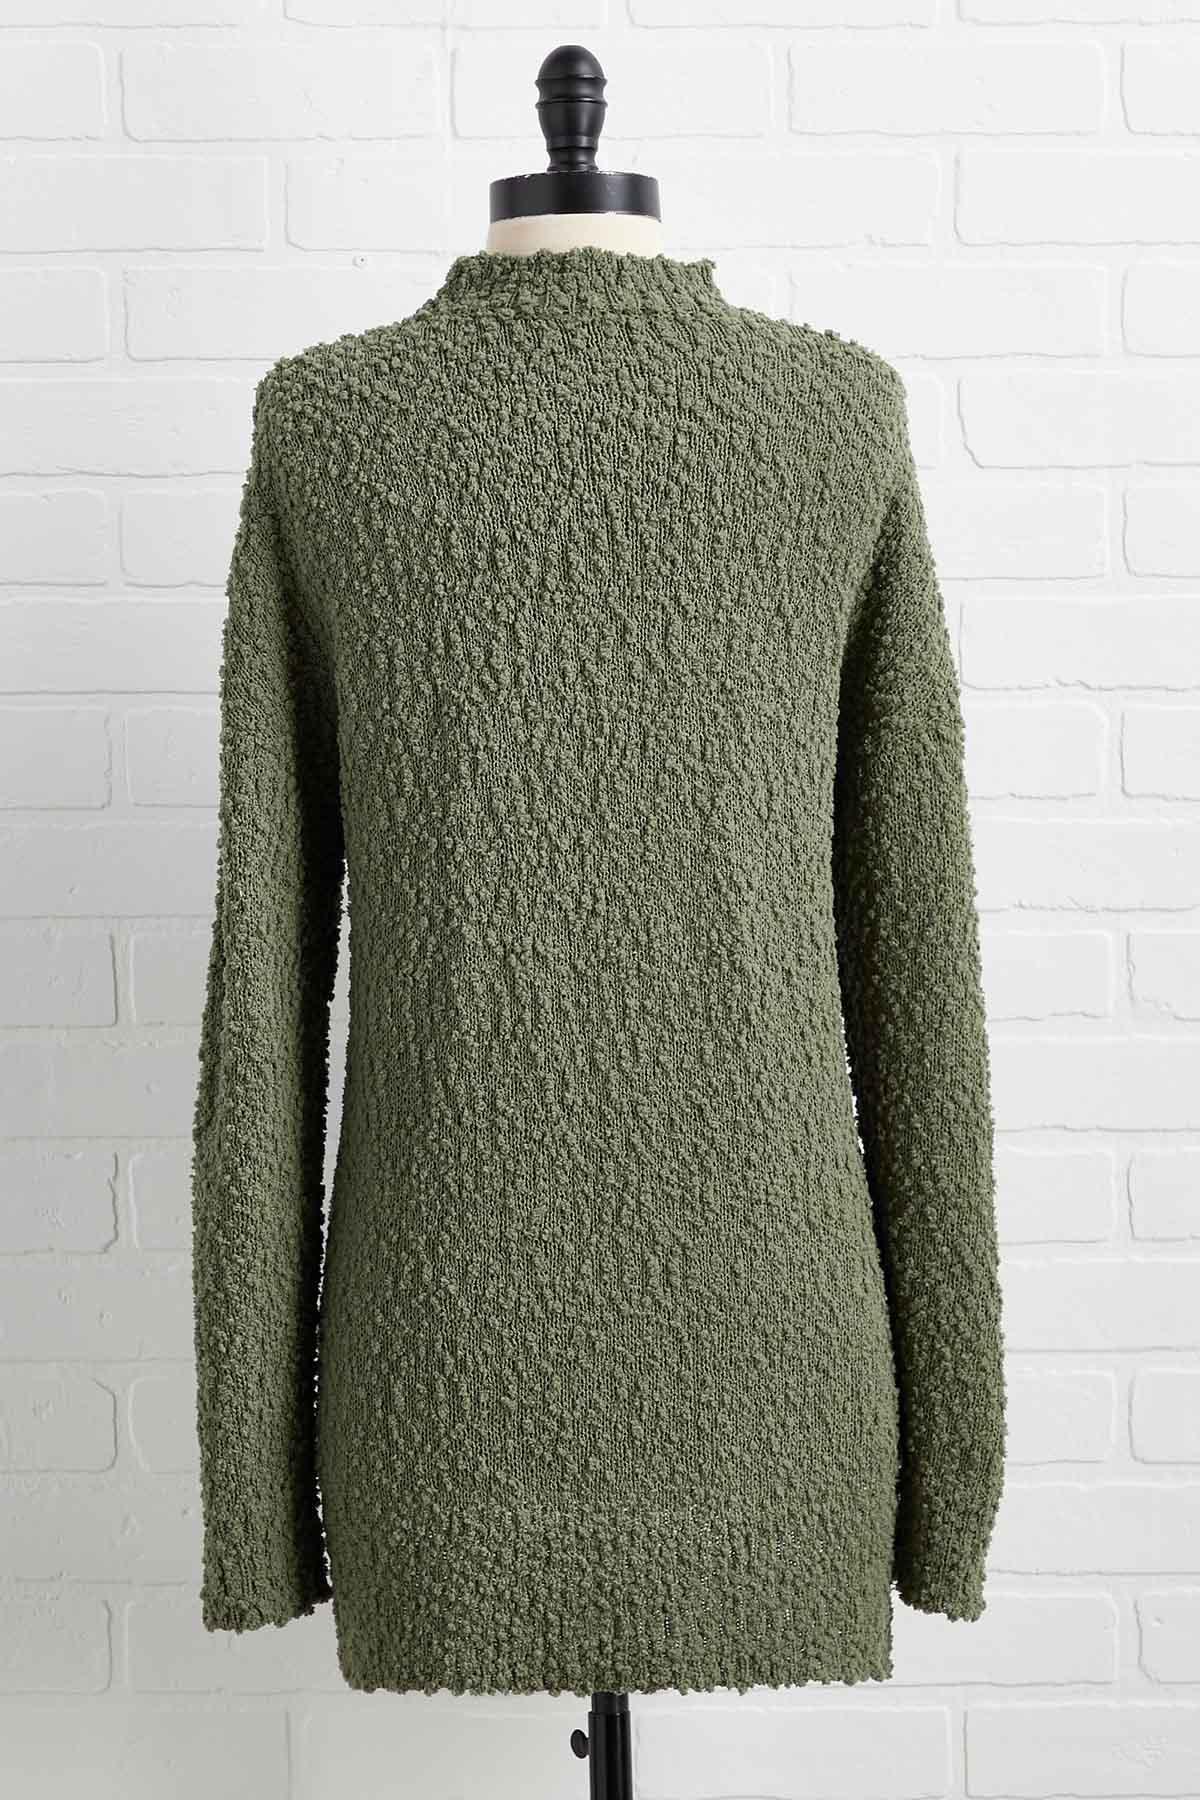 It's A Moss Up Sweater